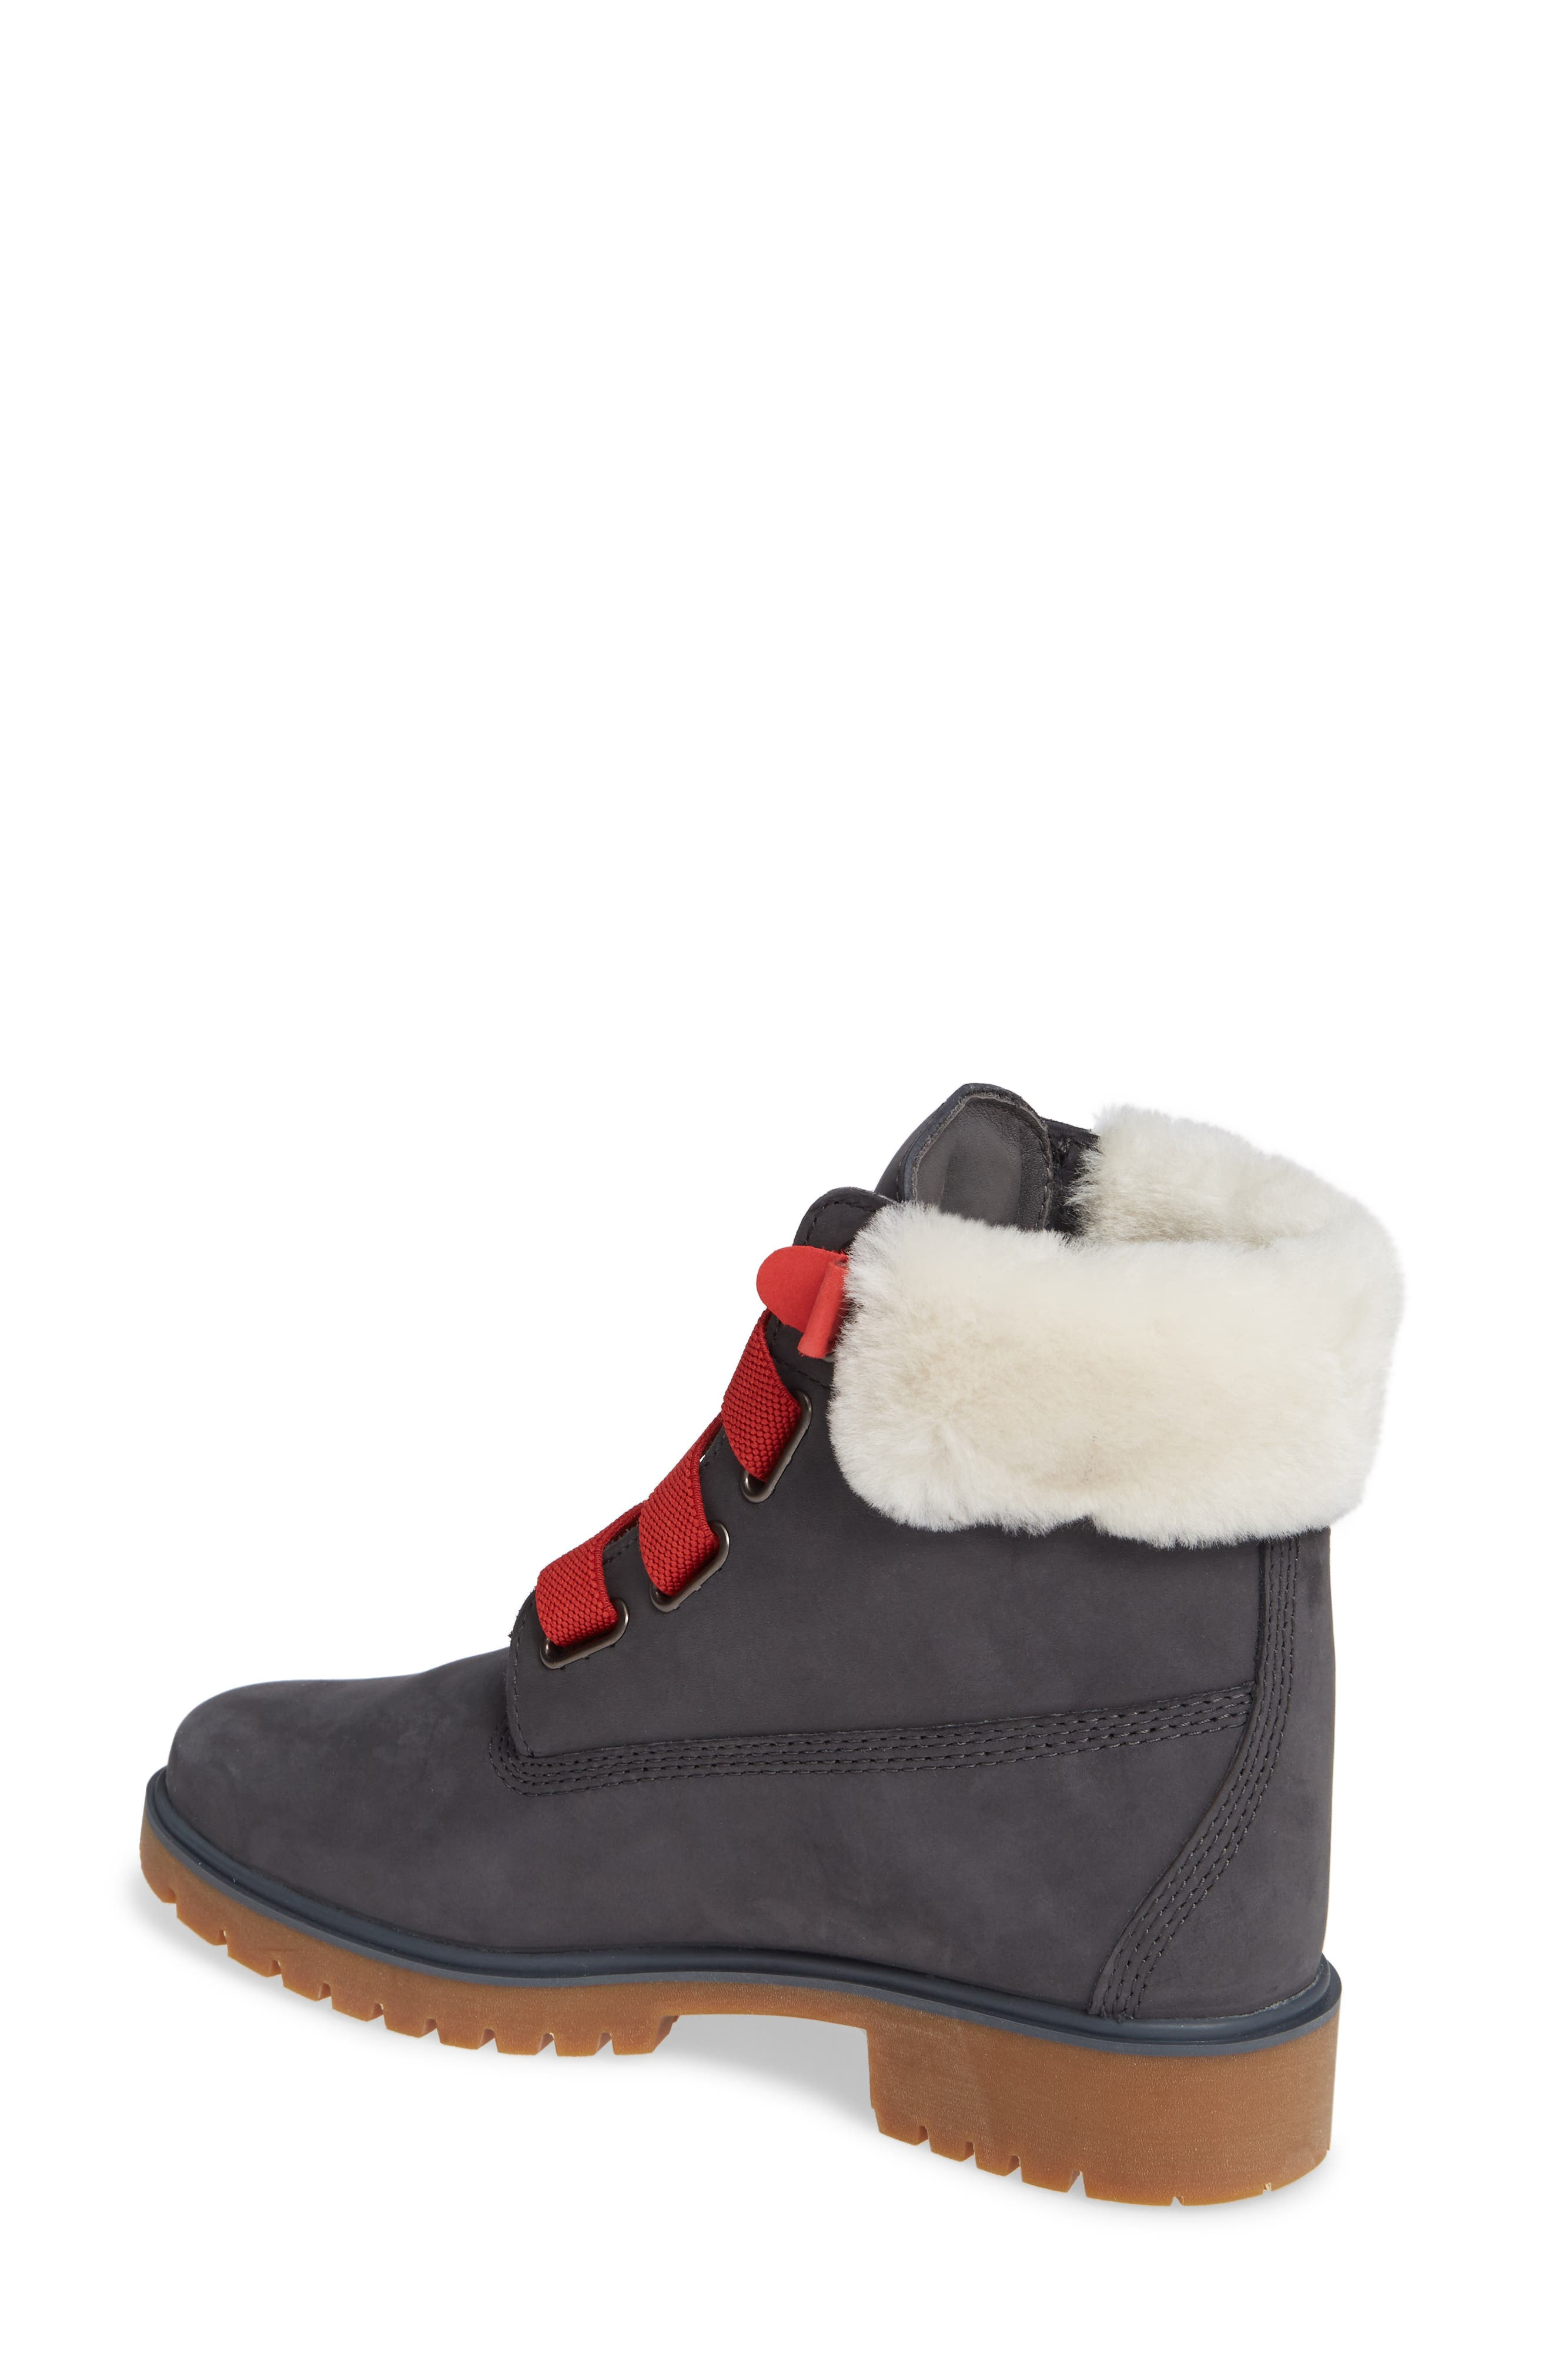 Convenience Waterproof Boot with Genuine Shearling Trim,                             Alternate thumbnail 2, color,                             065